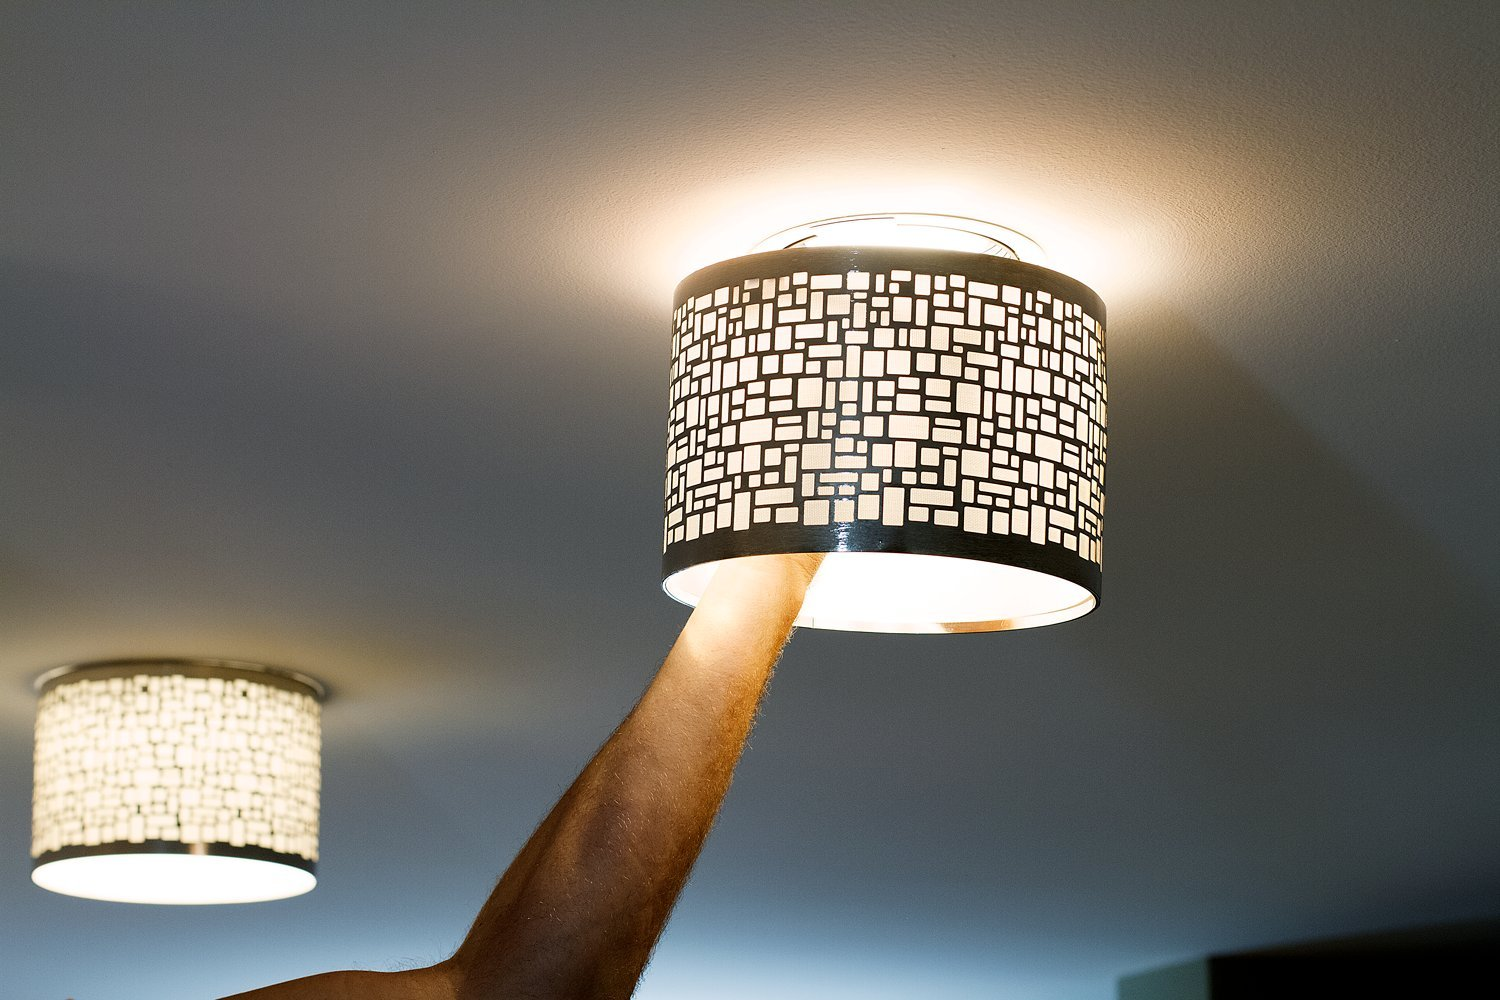 Buy Decorative Recessed Light Cover Ezclipse Cobblestone 2pc Bundle Recessed Light Shade 8 5 X6 Transform A Recessed Light Cover In 30 Seconds With No Expensive Renovations Chrome 2pc Online At Low Prices In